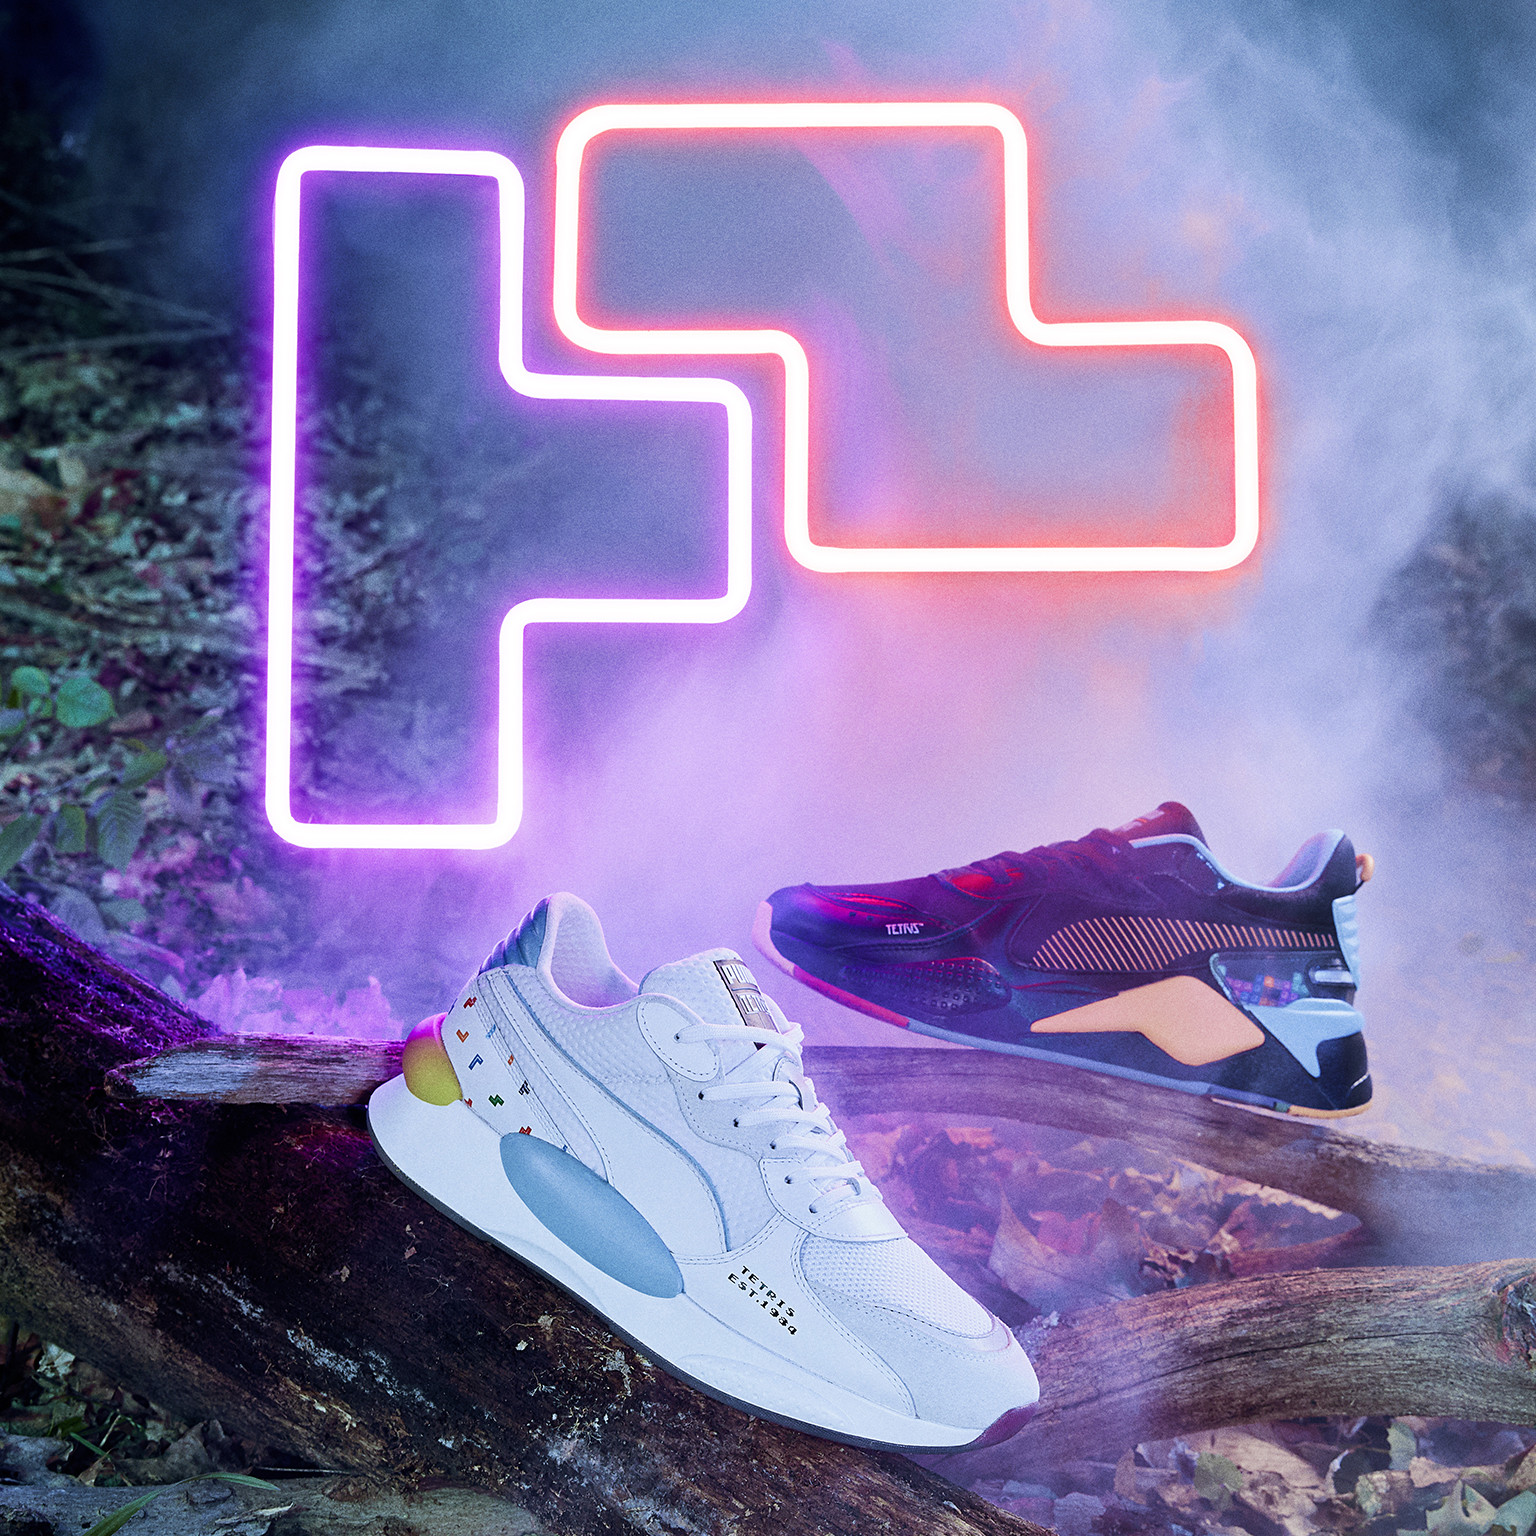 Fall 2019 sales are here! Get this deal on Puma Women's Cell